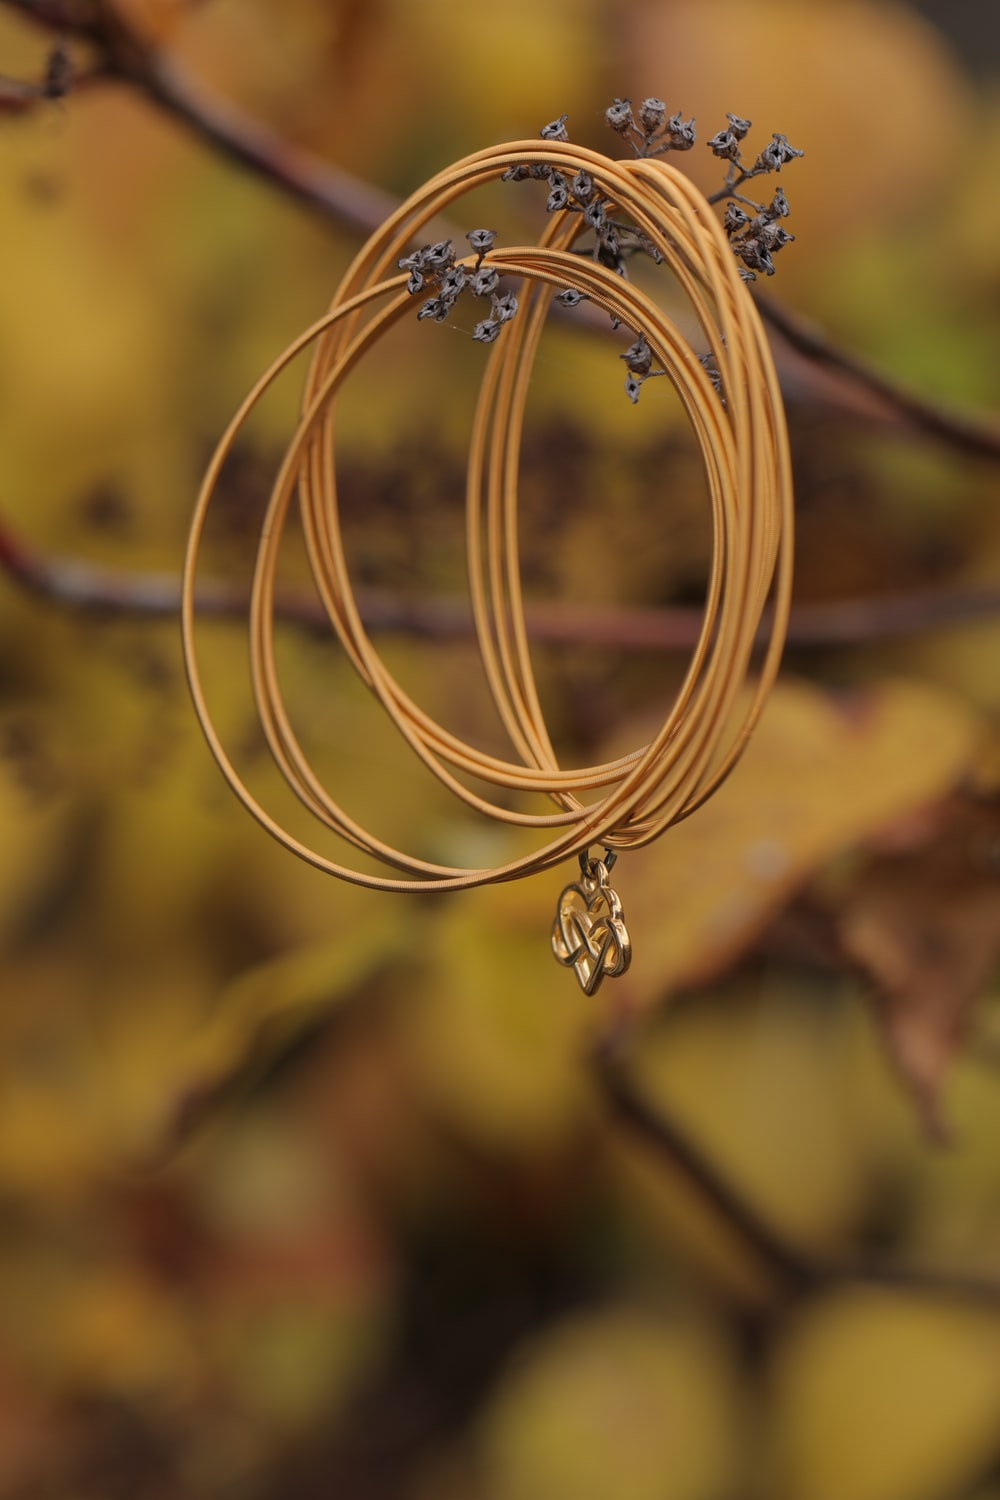 gold colored accessory in close up photography